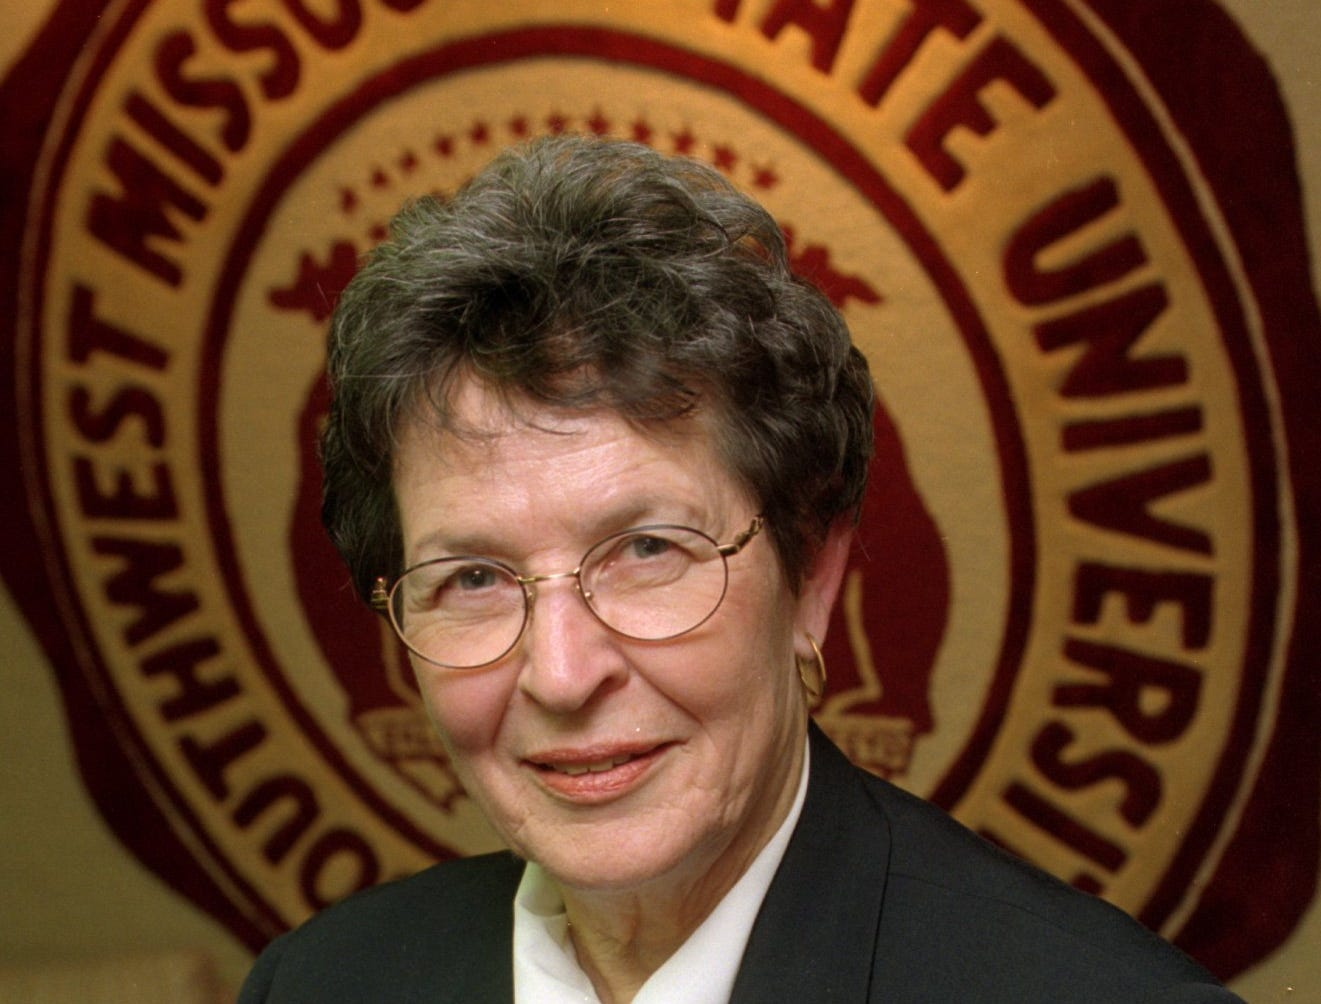 Dr. Mary Jo Wynn, senior director of athletics at Southwest Missouri State University announced that she will retire effective July 1, 1998. Wynn has been a fixture on the athletics scene for over 40 years as a teacher, coach and administrator.